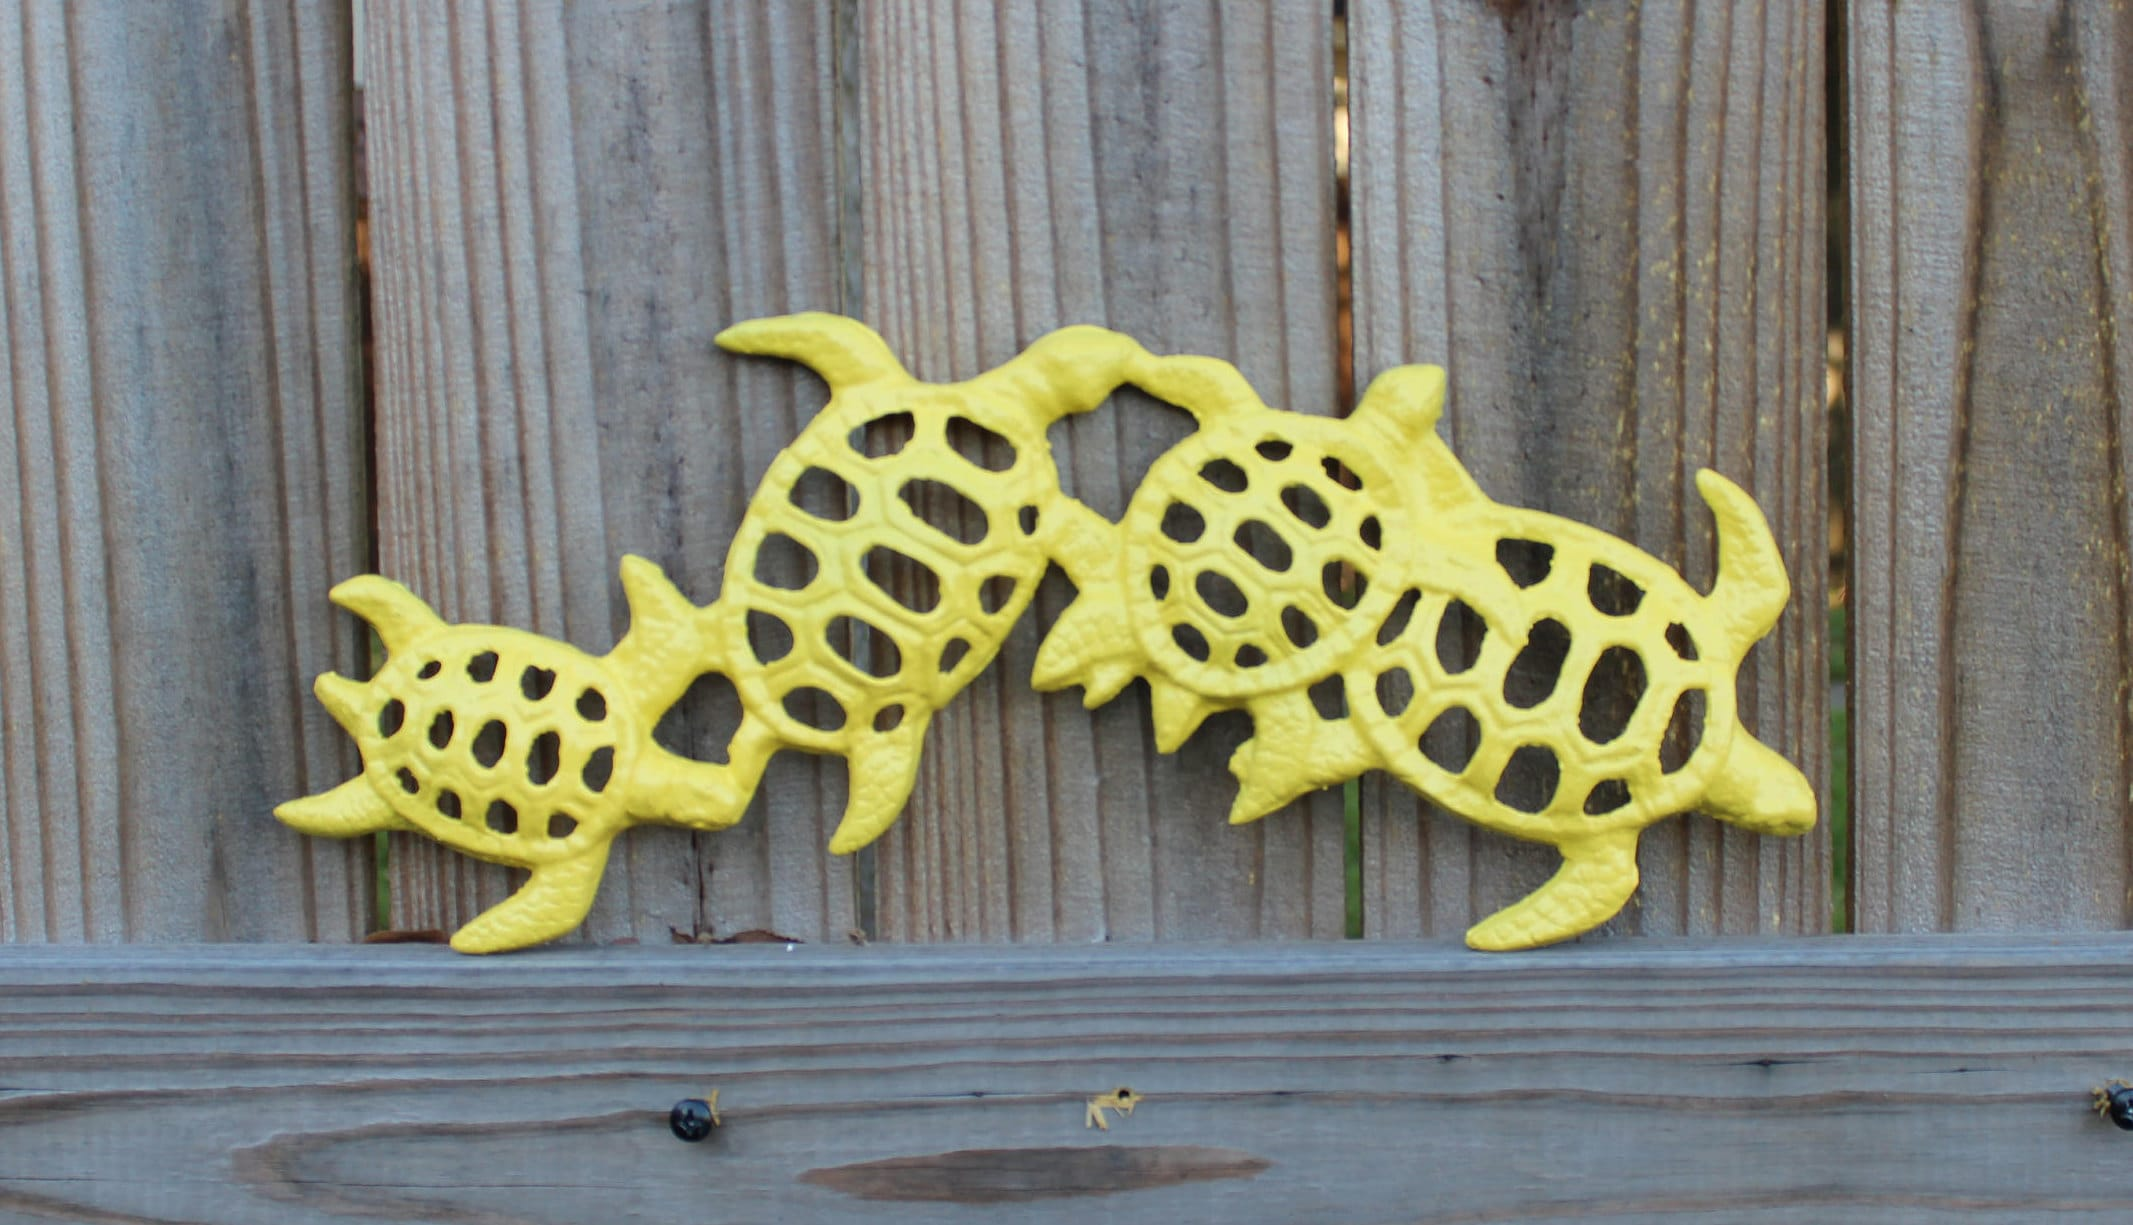 Cast iron turtle turtle wall art metal turtle wall hanging | Etsy